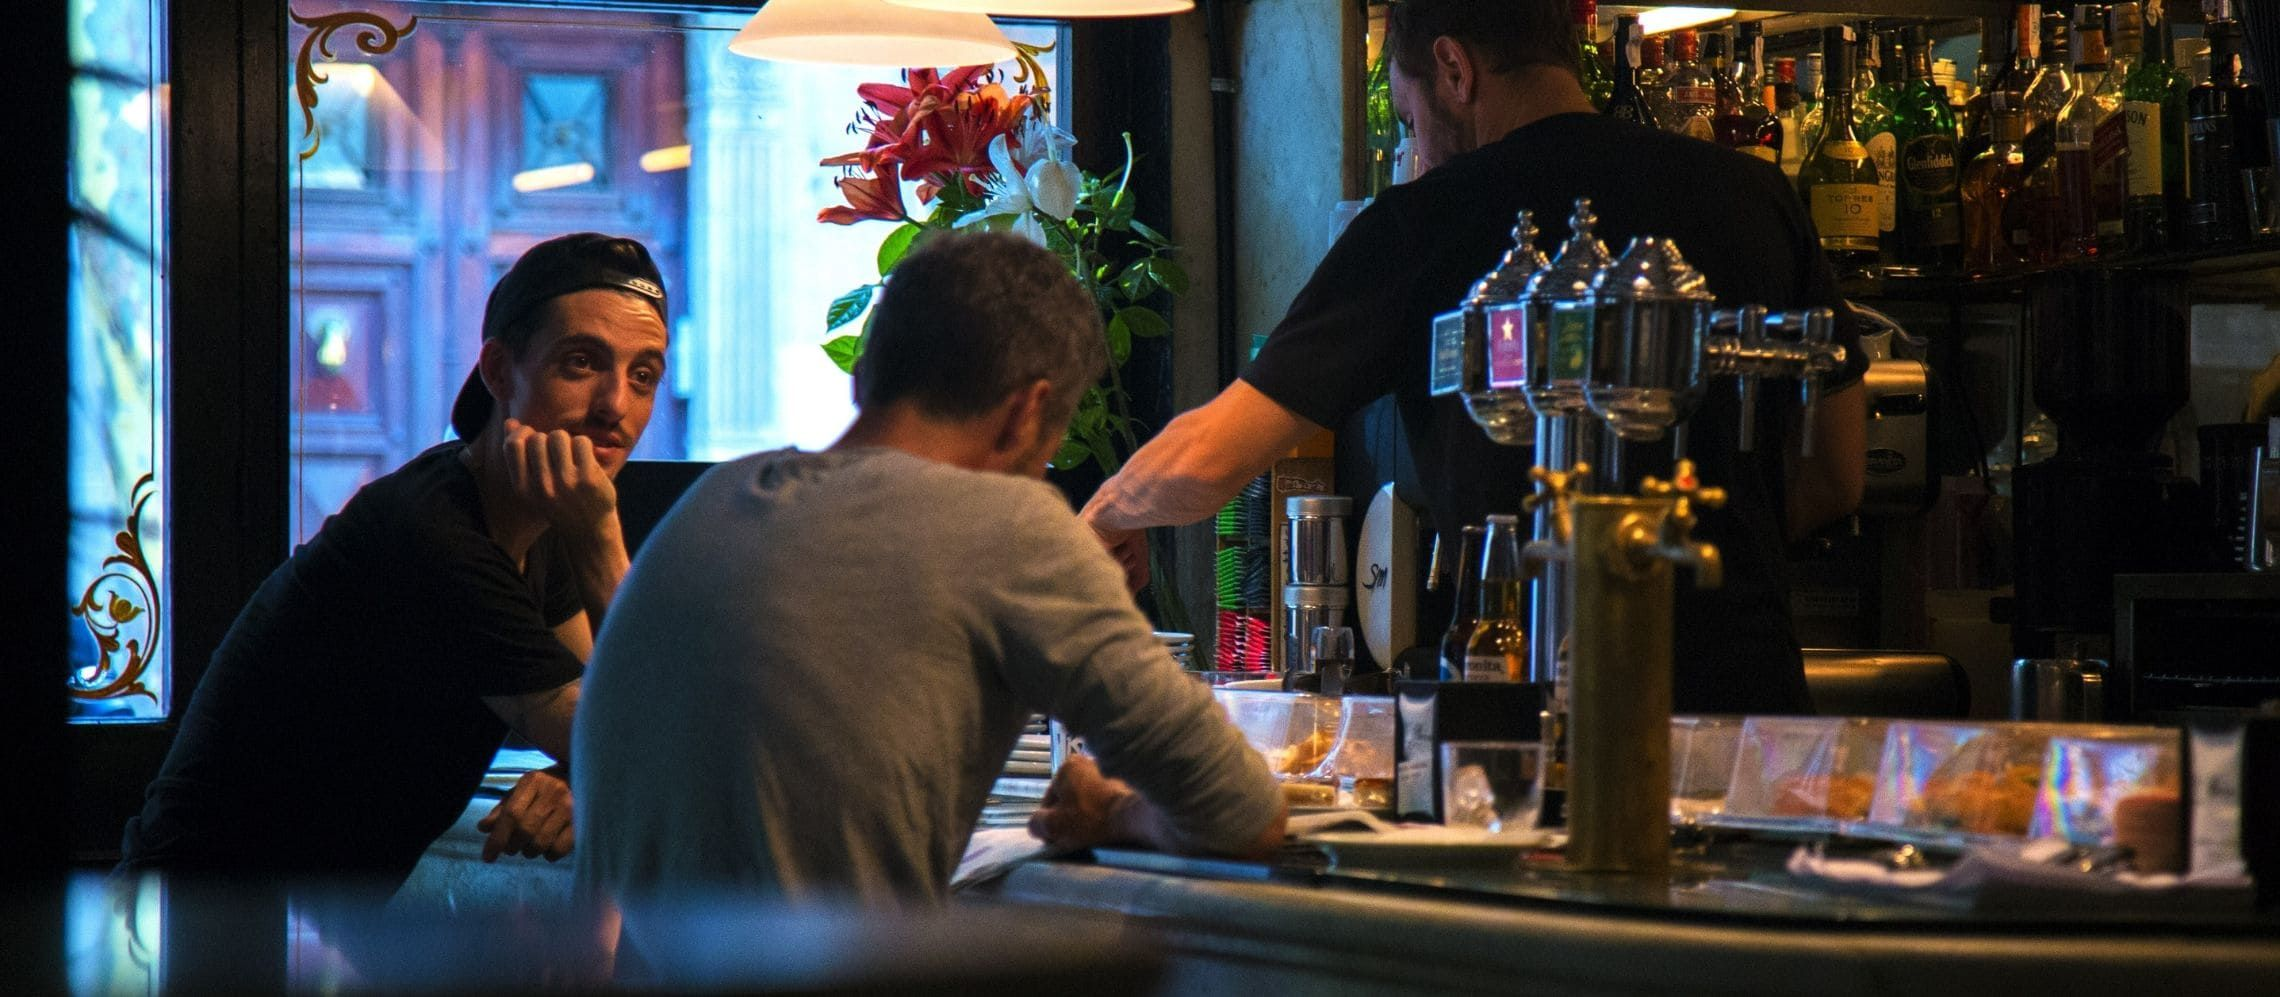 Photo for: Best Wine Bars in Brighton